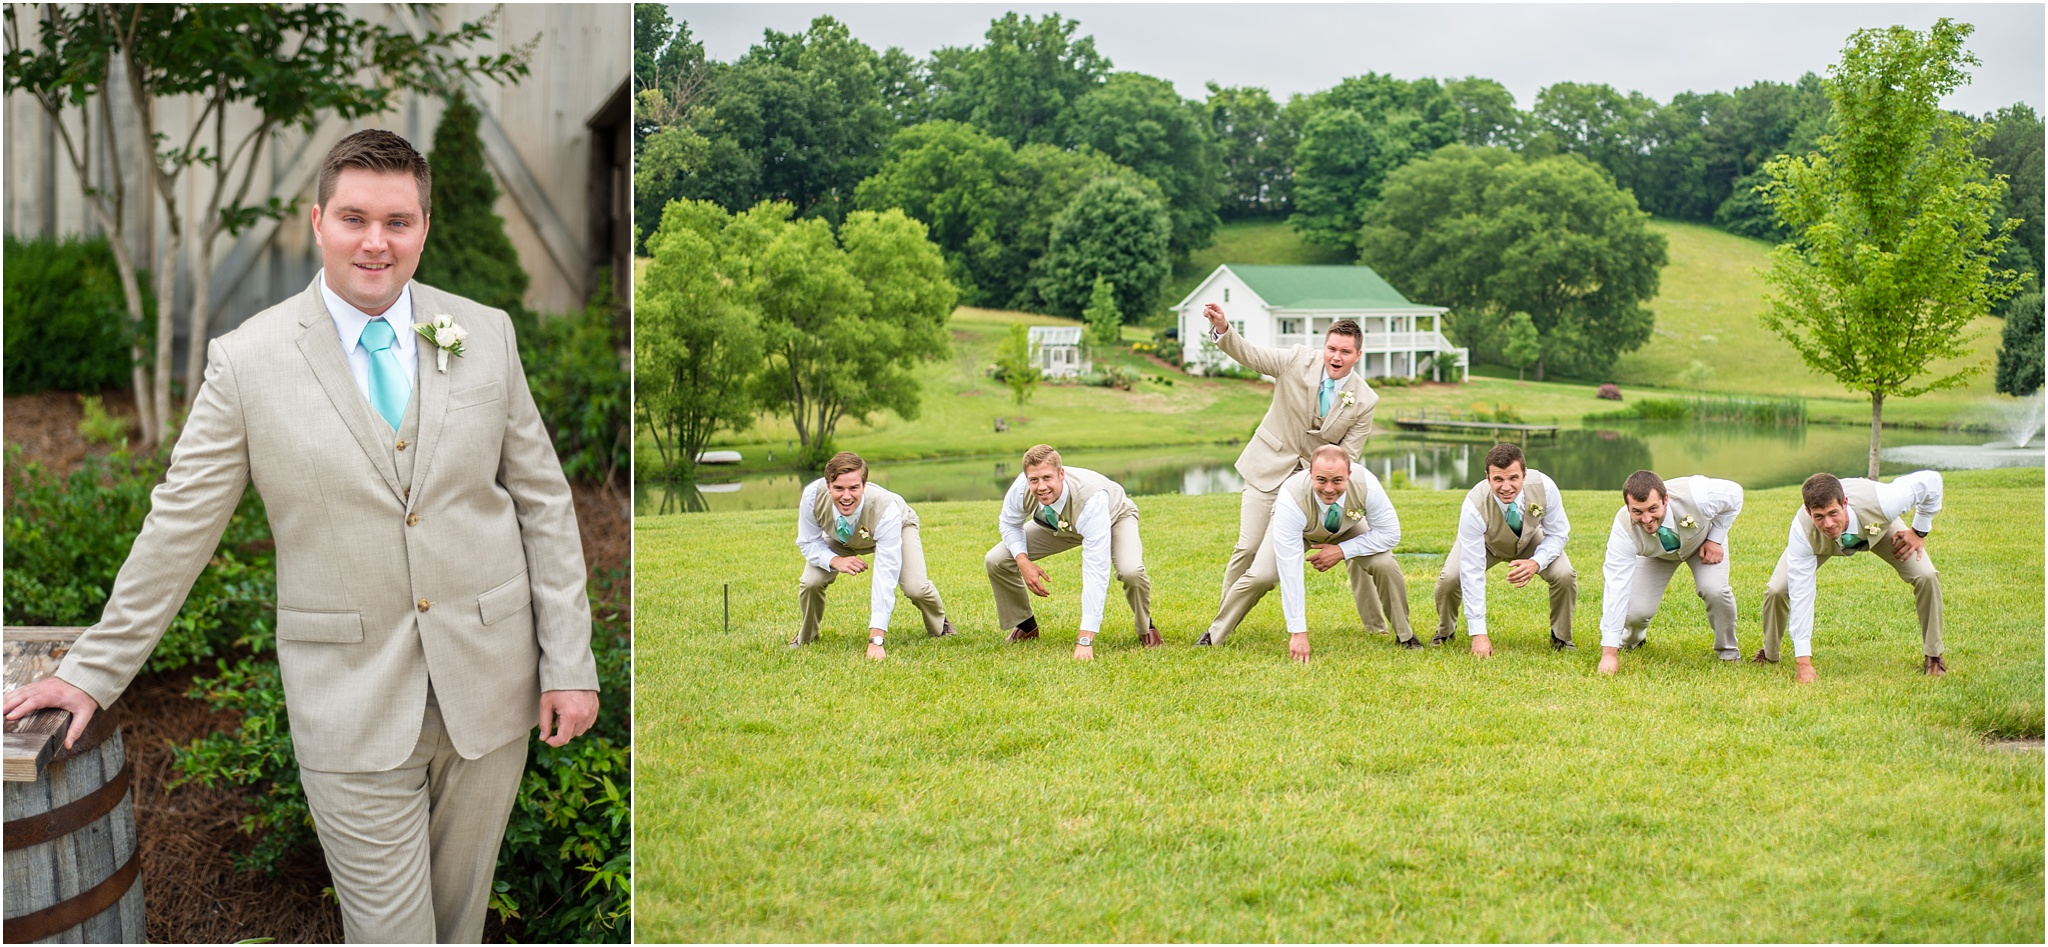 Greg Smit Photography Nashville wedding photographer Mint Springs Farm  5